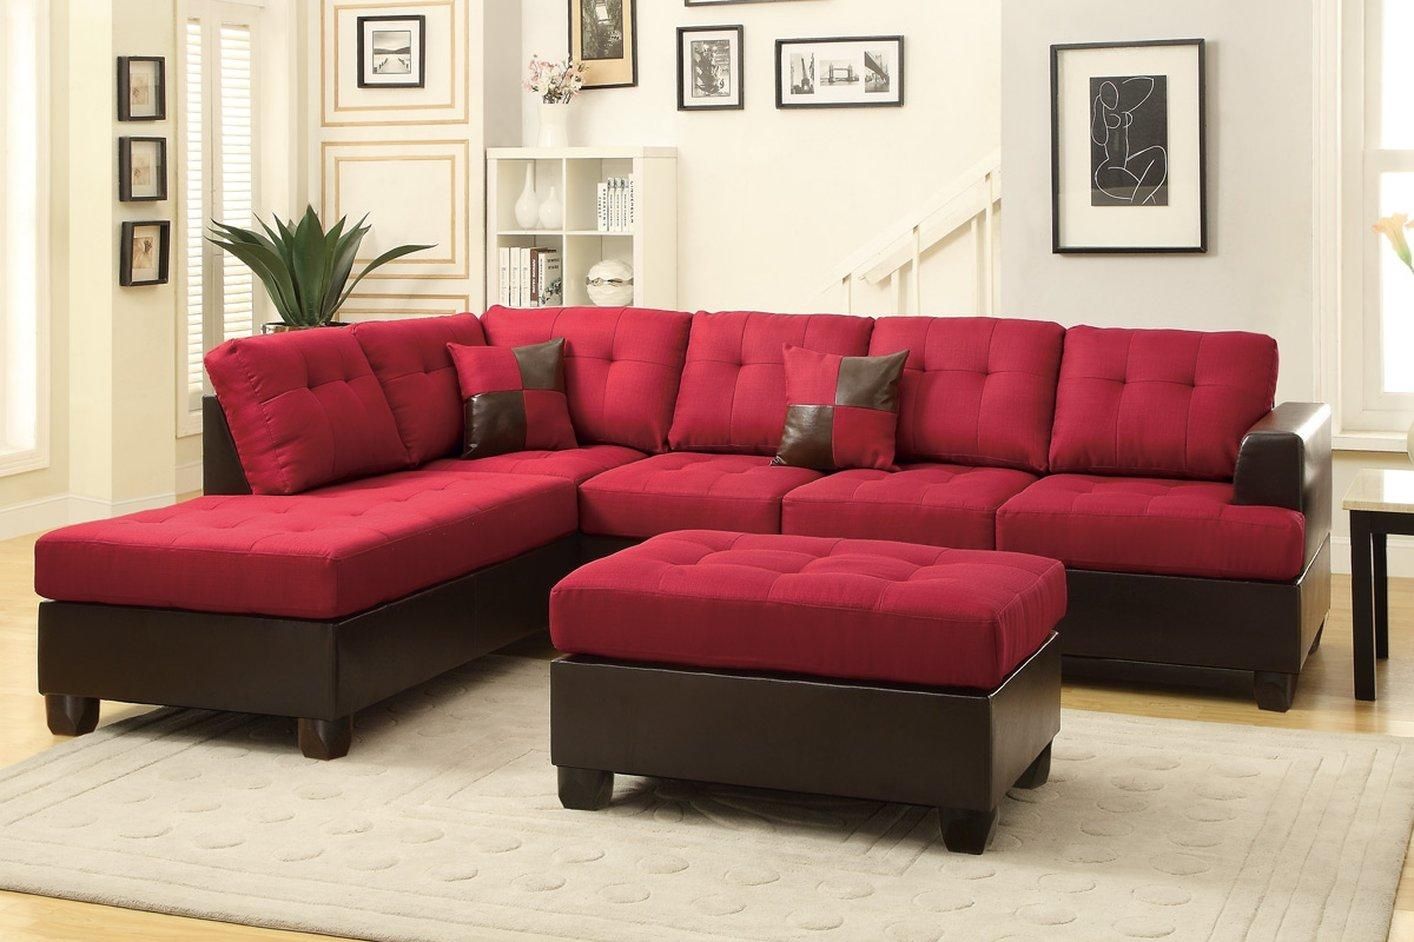 Glamorous Genuine Leather Chesterfield Sofa As Well As Modern With Regard To Red Sectional Sleeper Sofas (Image 7 of 22)